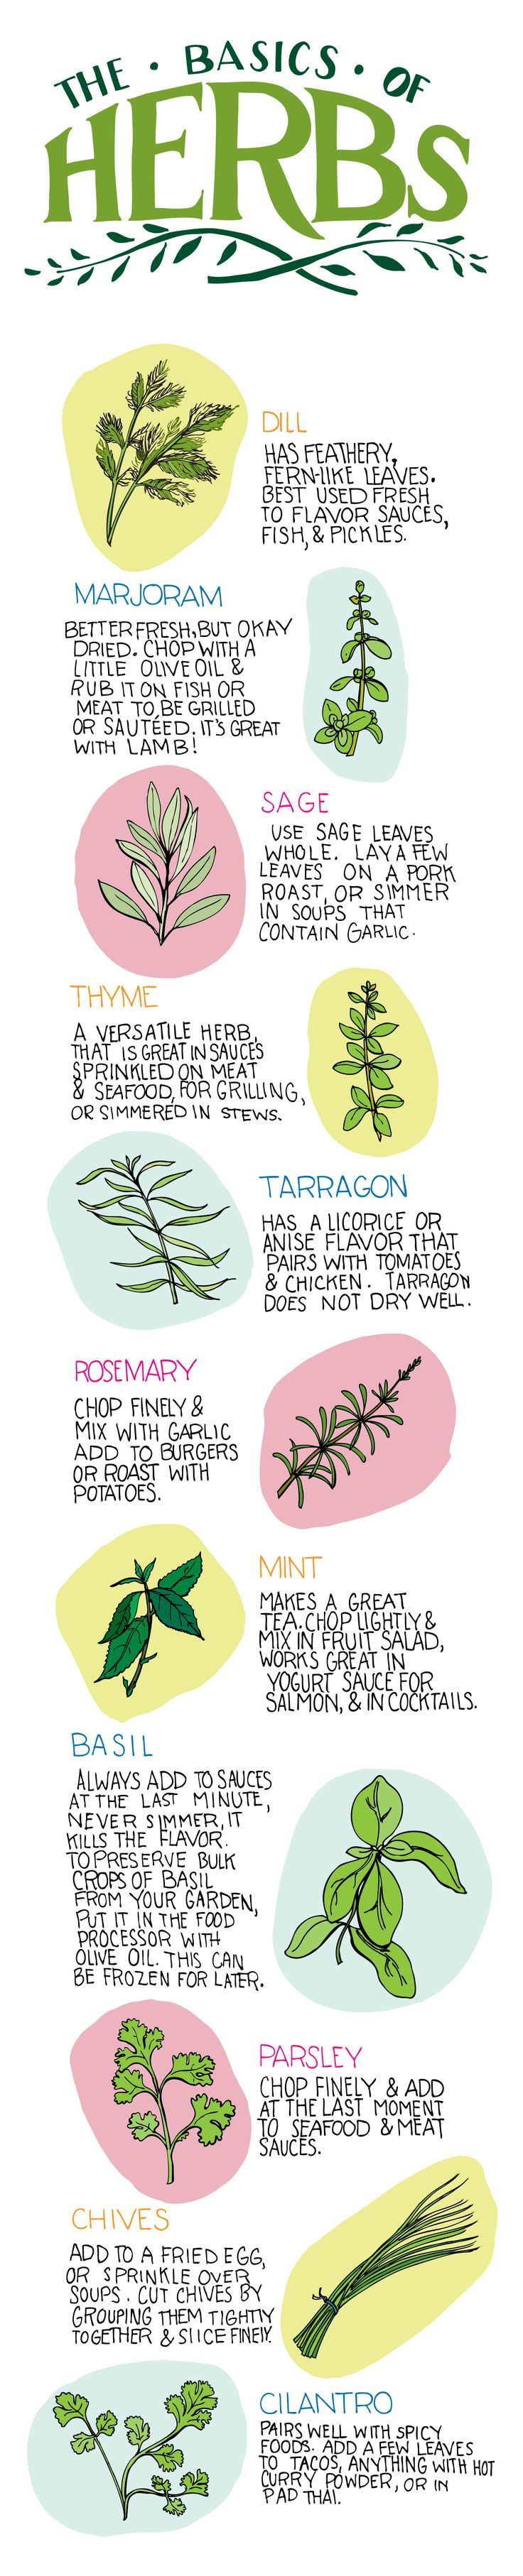 The basics of Herbs illustrated.